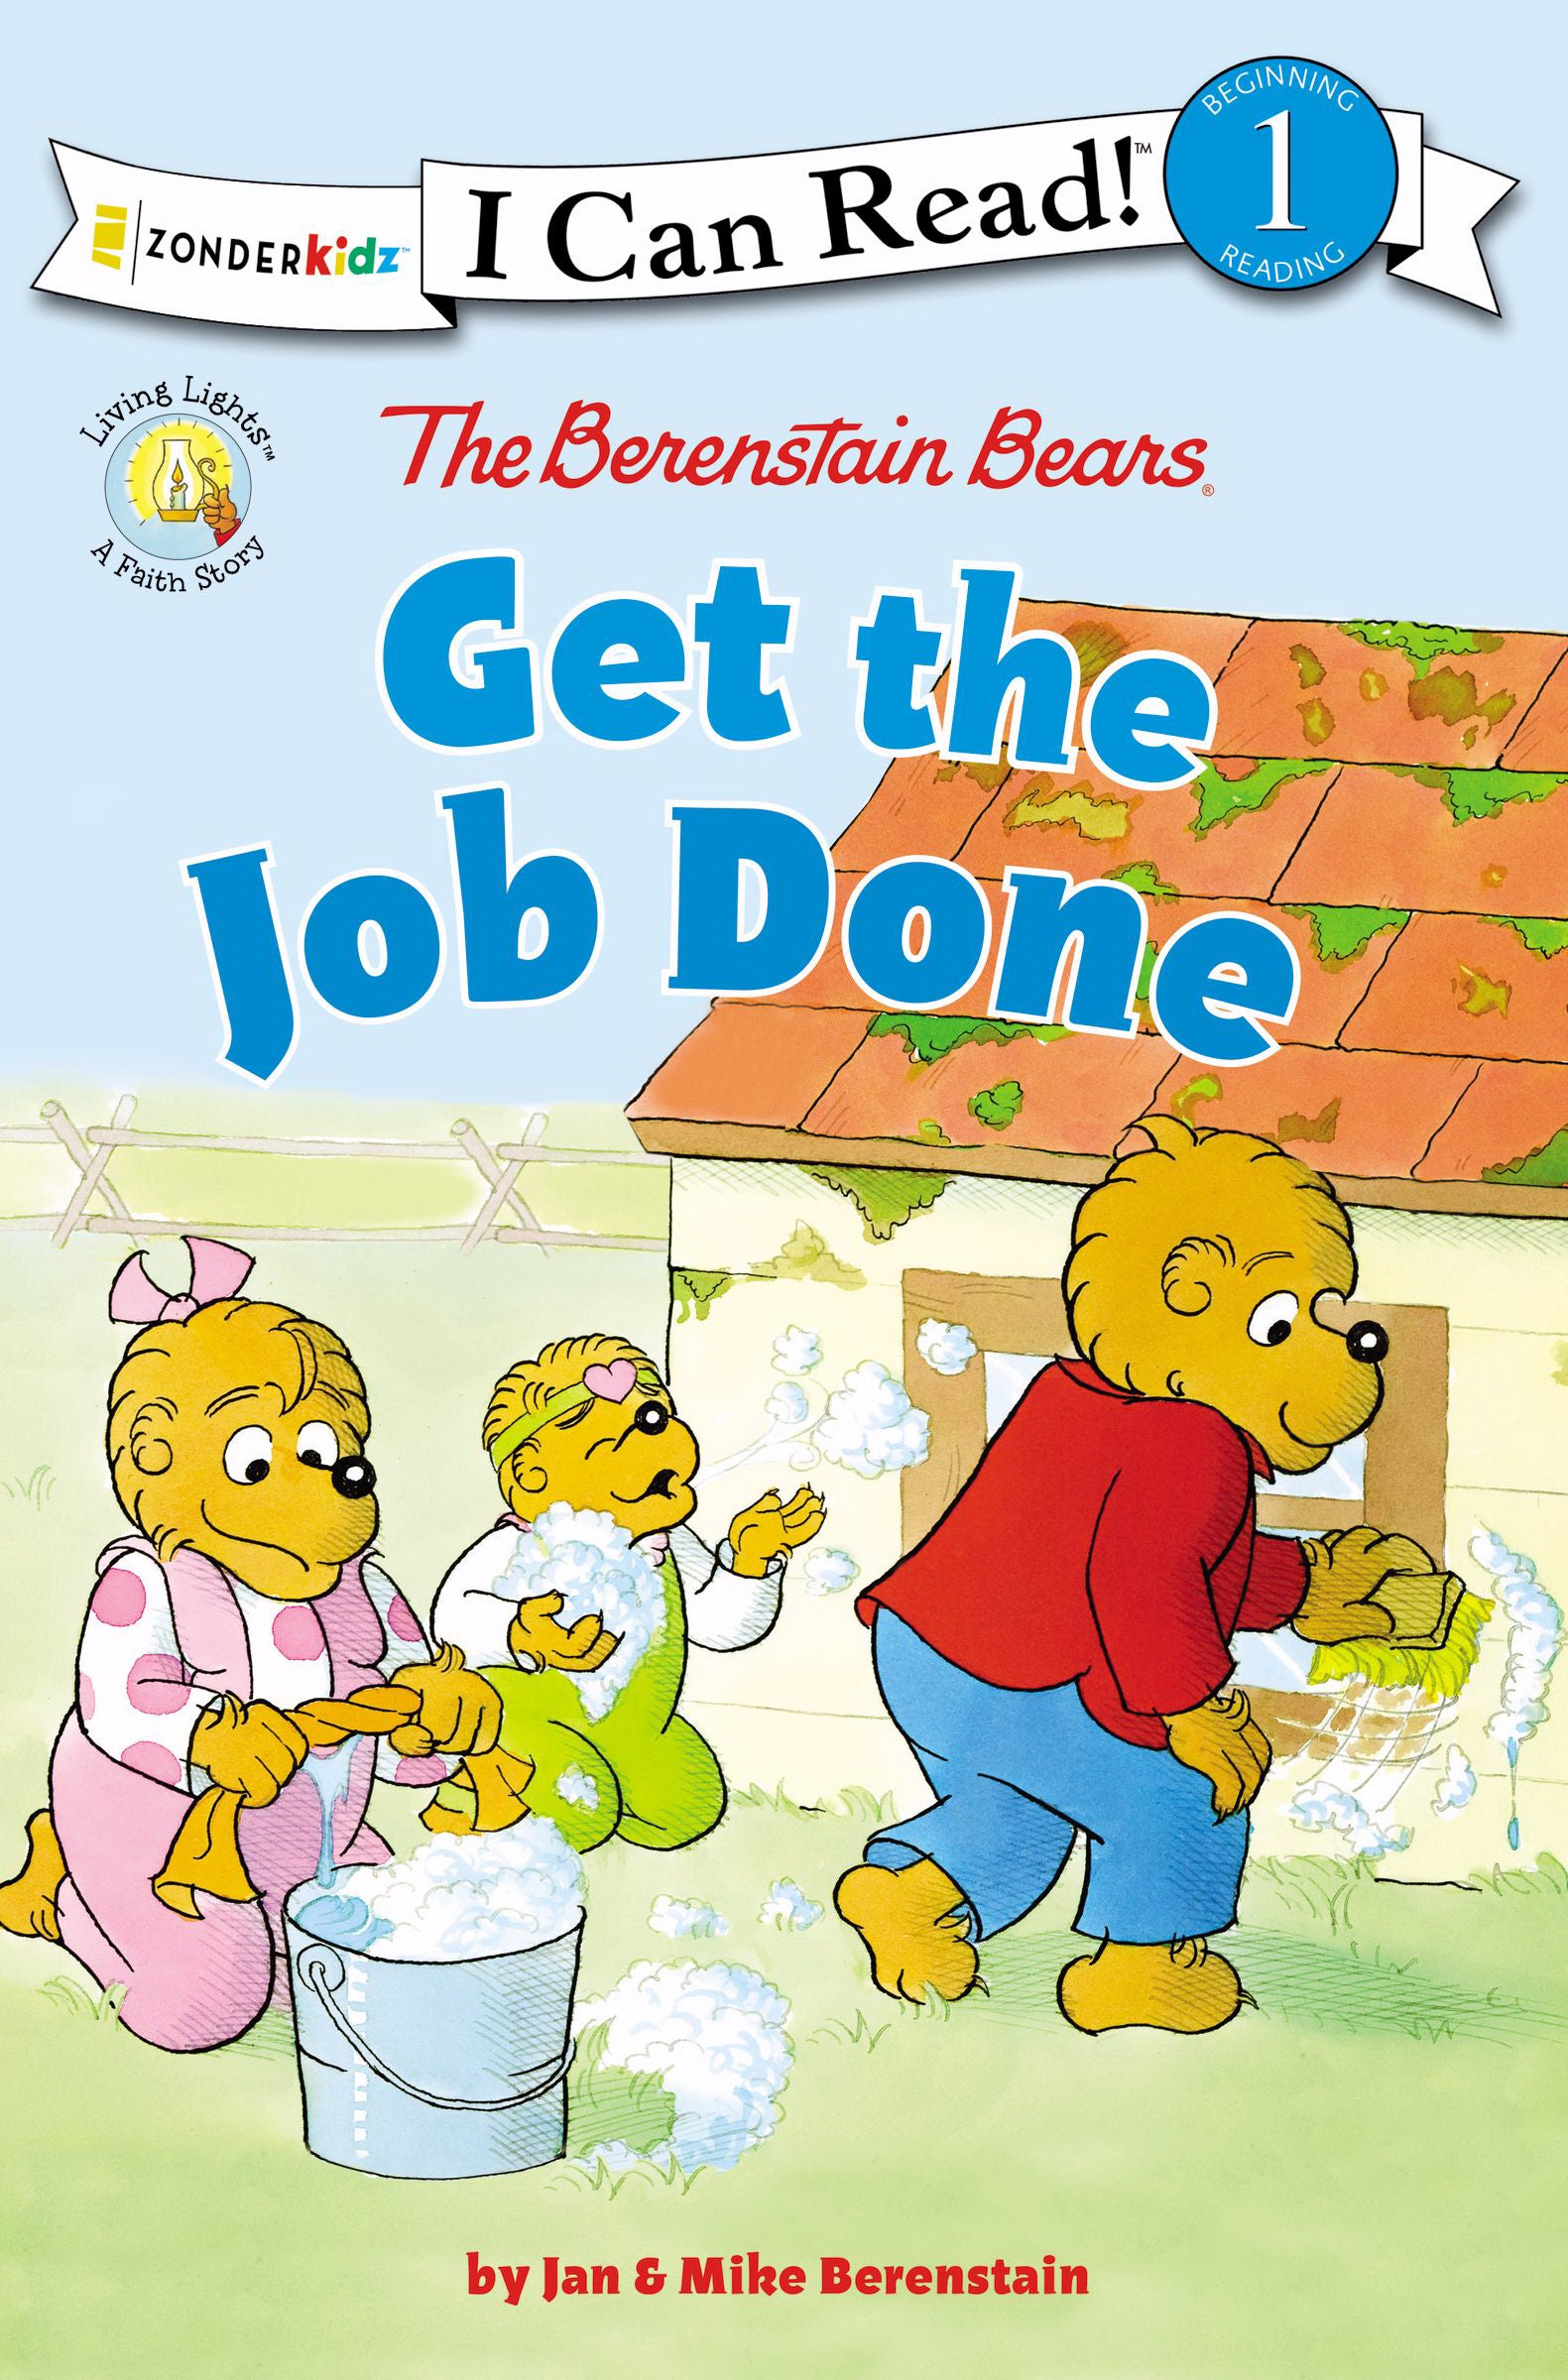 The Berenstain Bears Get The Job Done (I Can Read! 1)